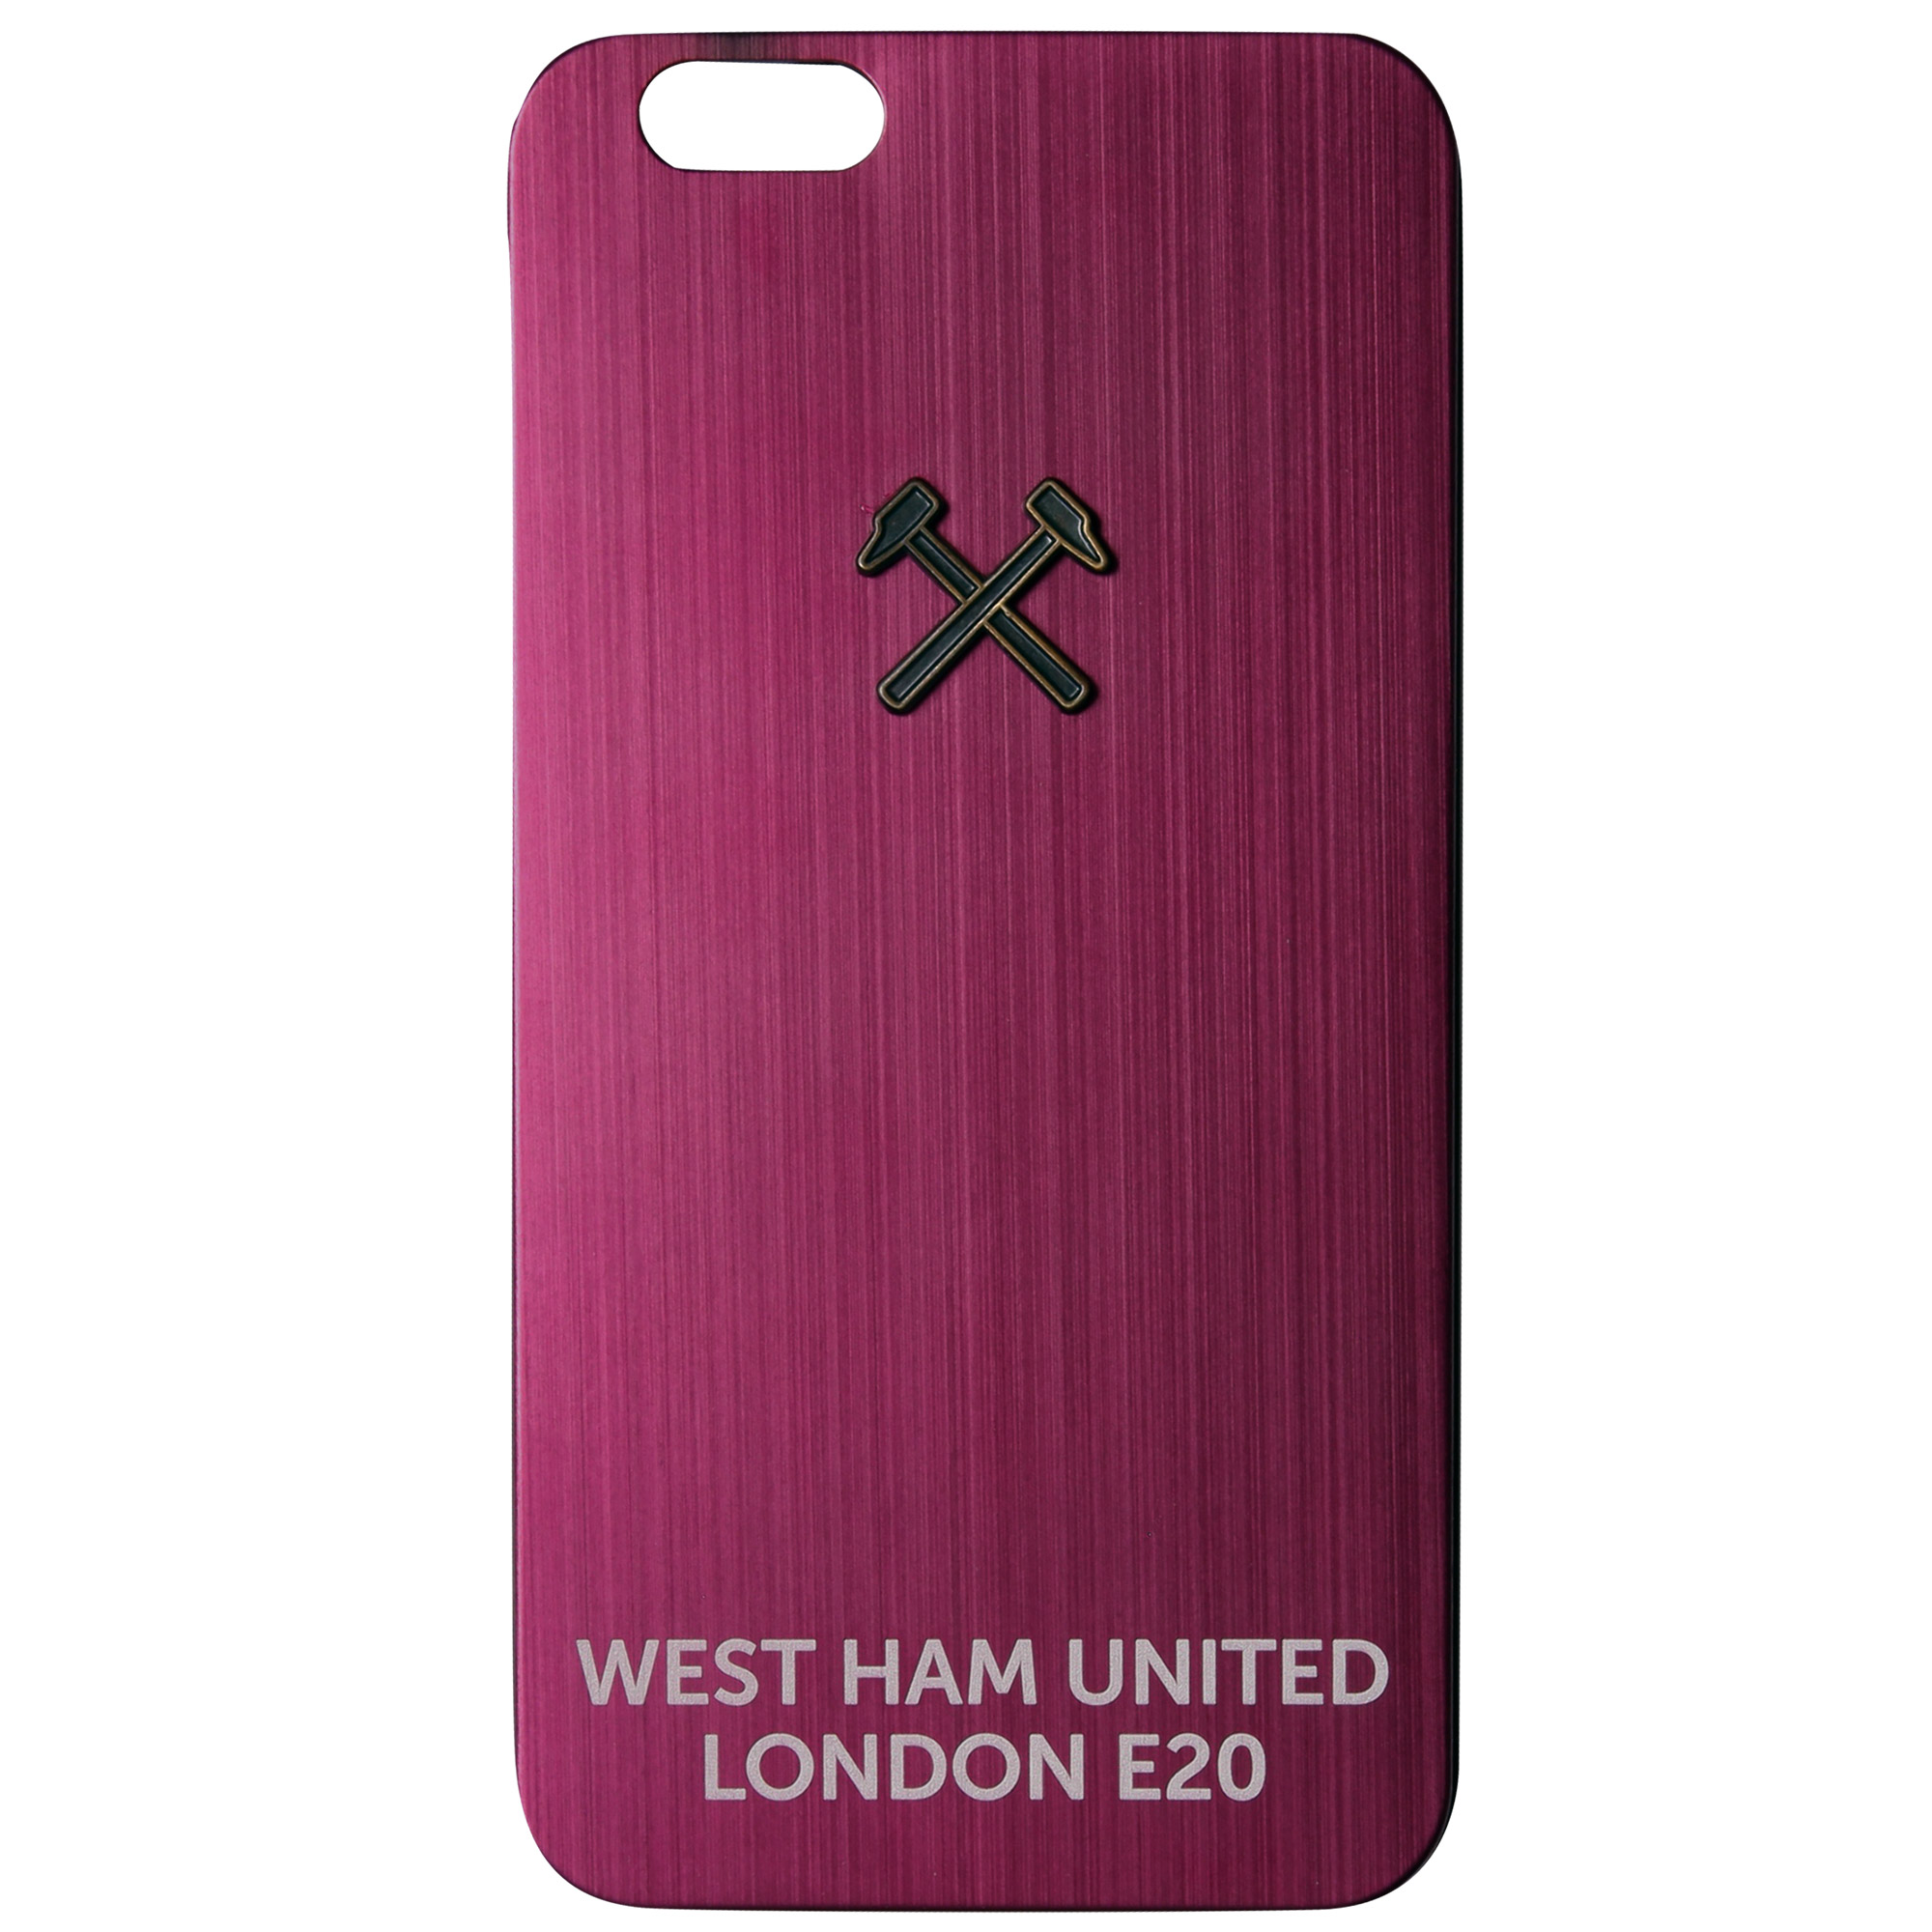 CROSSED HAMMERS METAL IPHONE 6 CASE